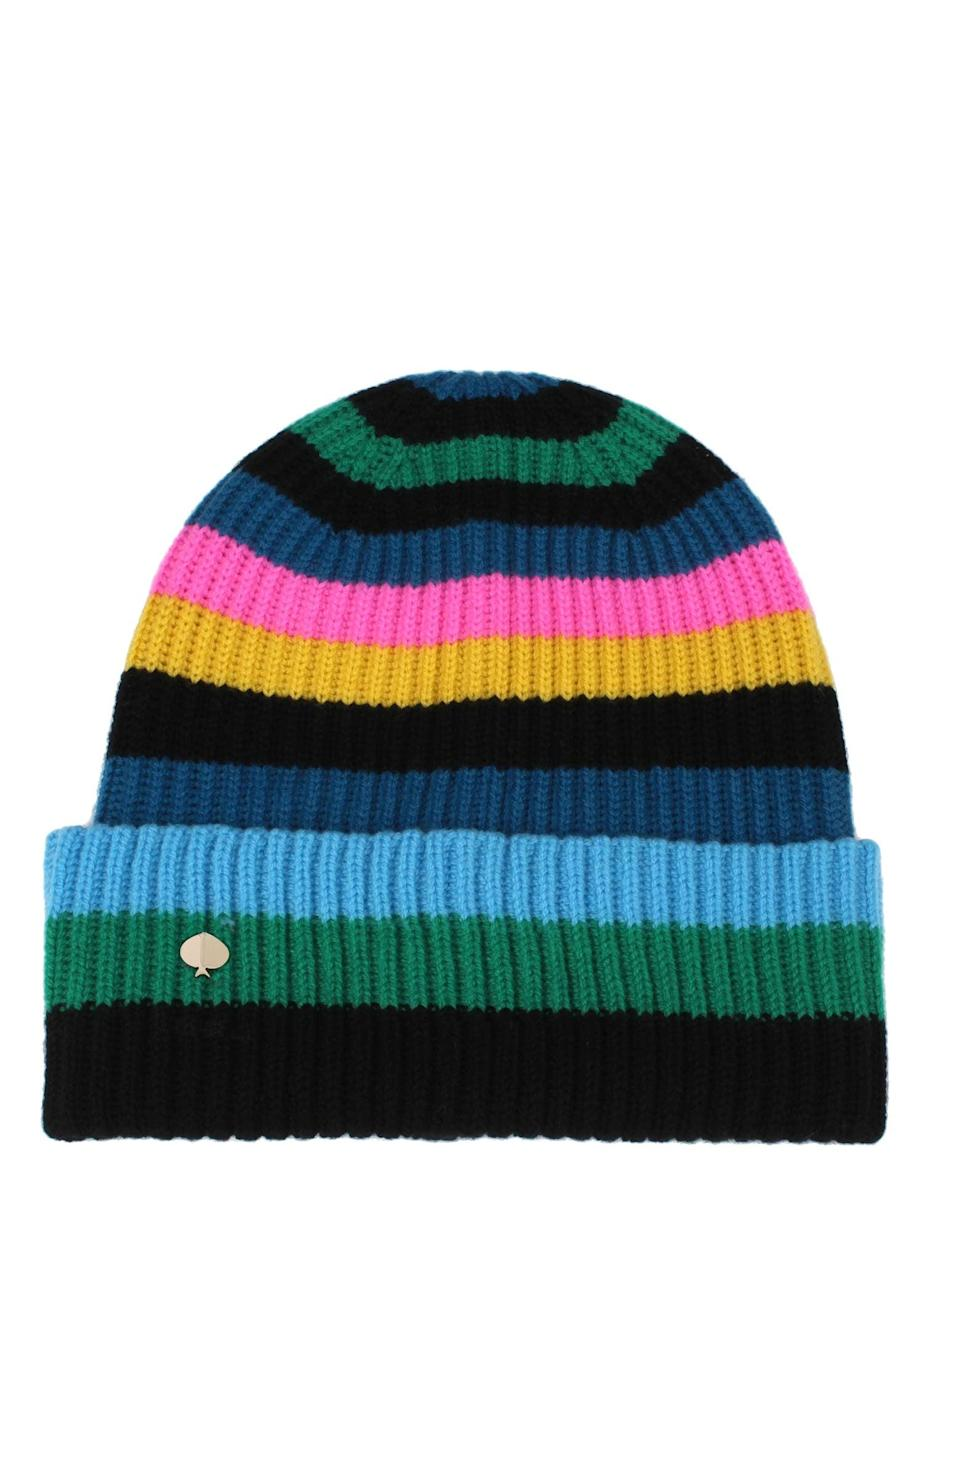 <p>This <span>Kate Spade New York Enchanted Stripe Merino Wool Beanie</span> ($78) is colorful and cute.</p>